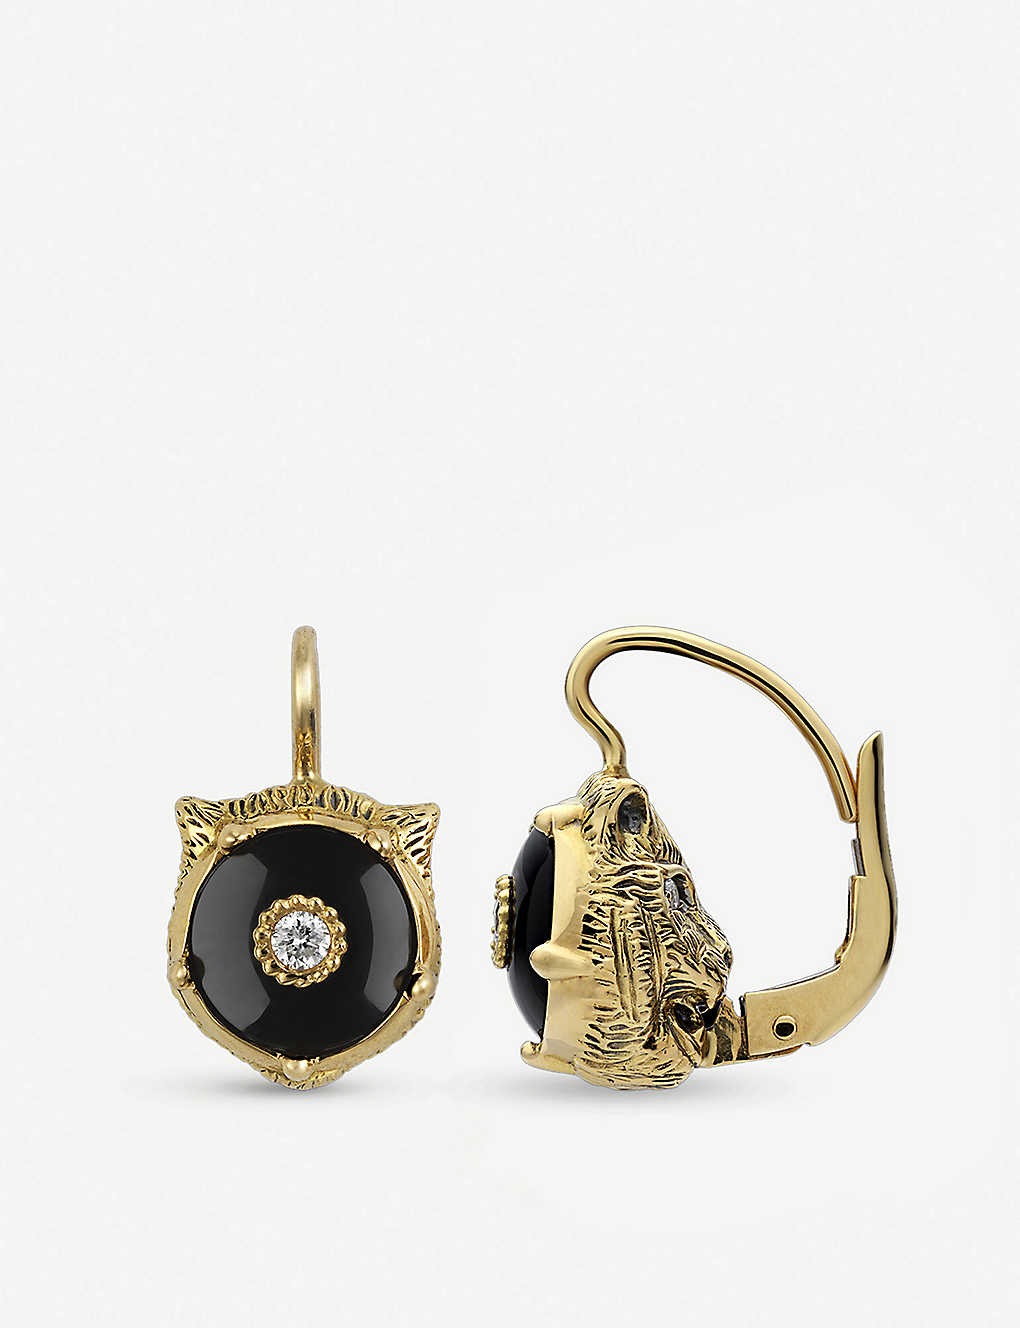 2b76ea2b8 Le Marché des Merveilles 18ct yellow-gold, black onyx and diamond earrings  - Yellow ...